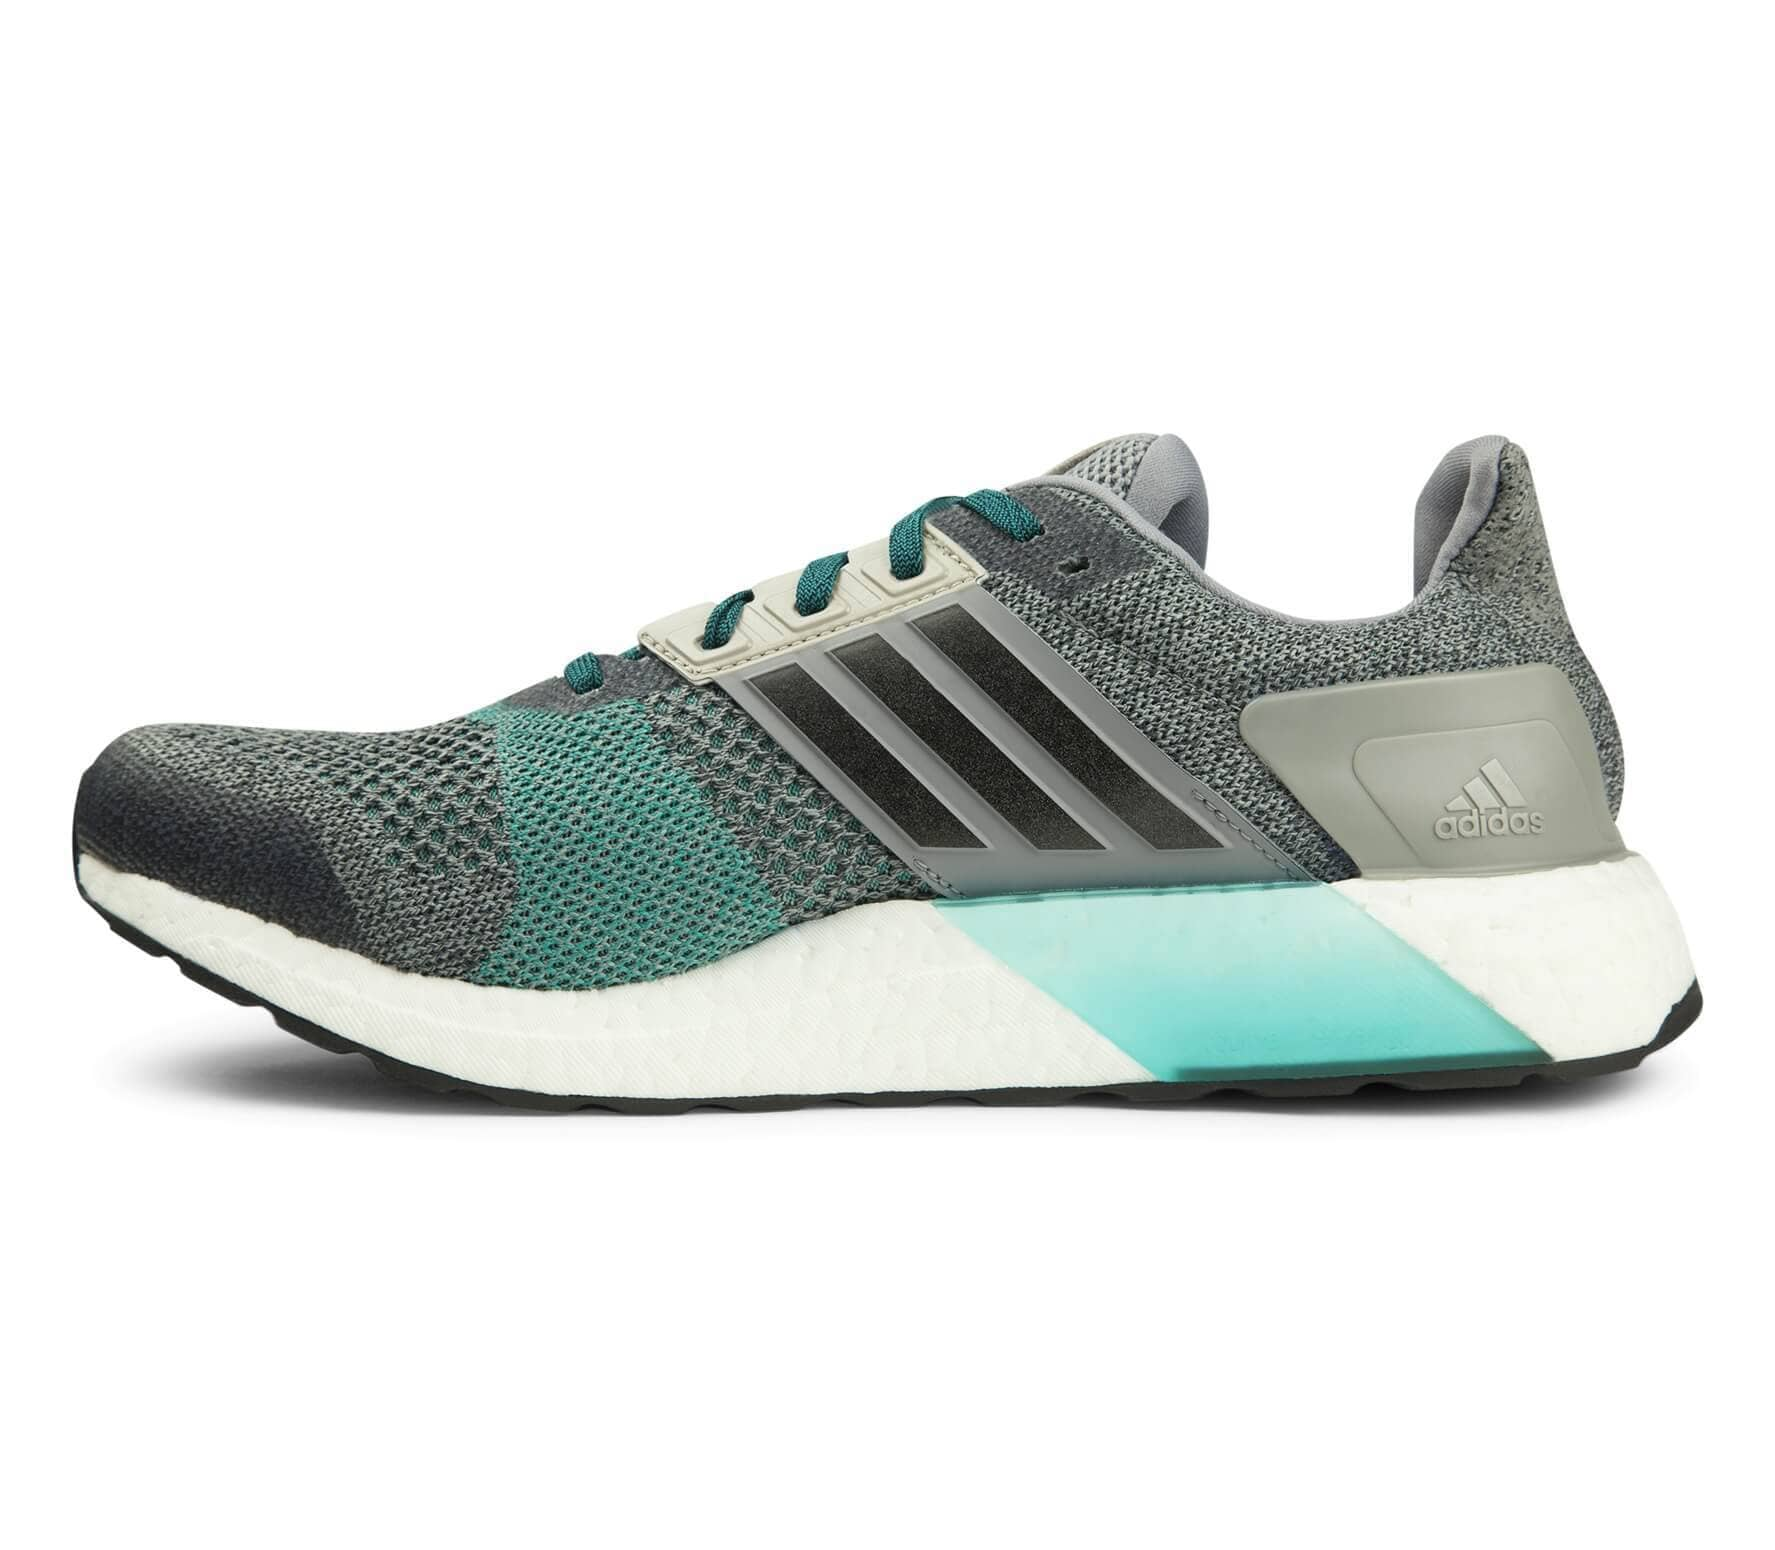 AF6517 Adidas Ultra Boost ST Hombres Running Zapatos Gris